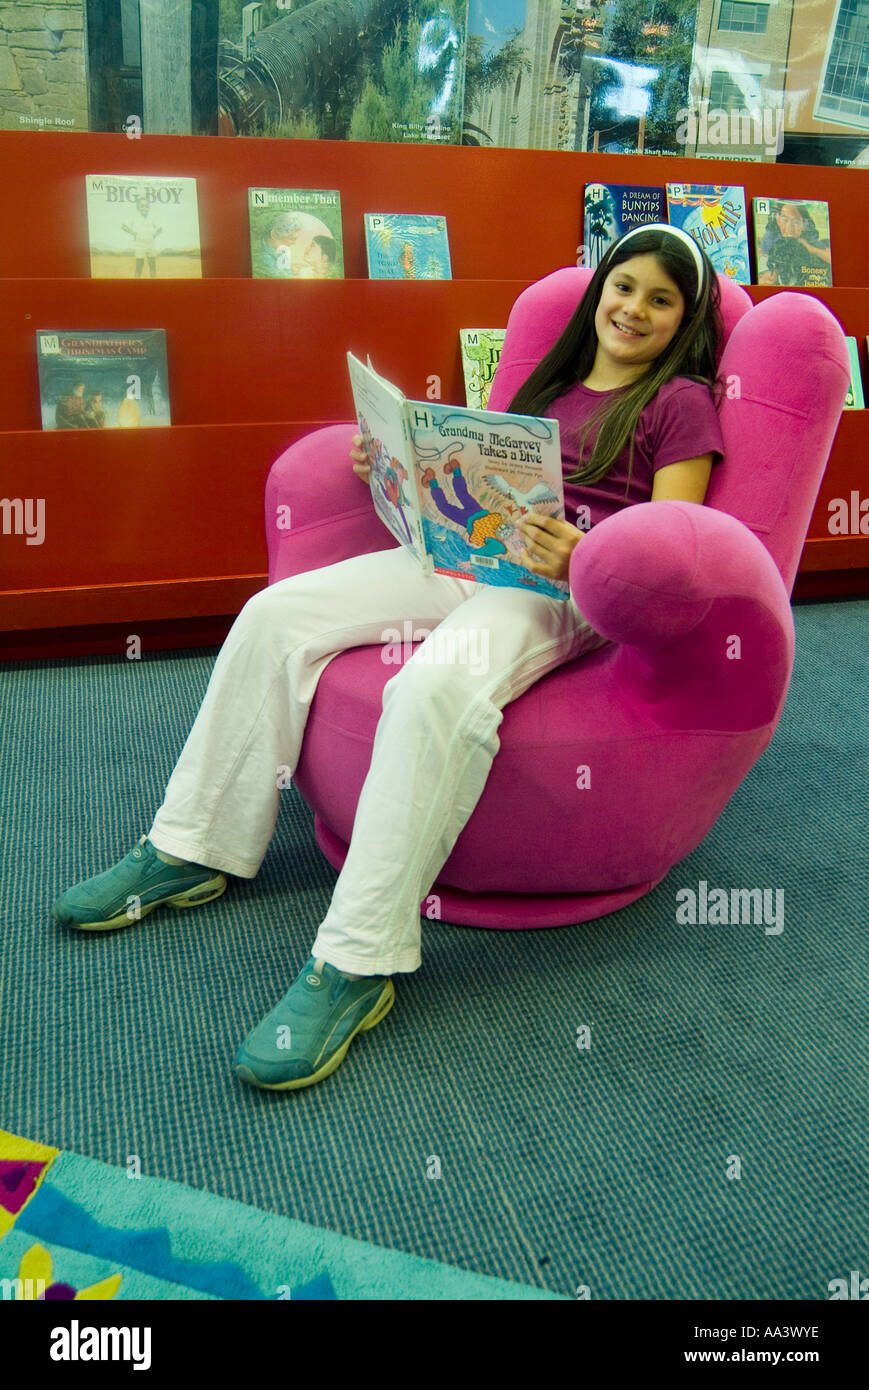 A young girl in a library sitting in a fun chair shaped like a hand  sc 1 st  Alamy & A young girl in a library sitting in a fun chair shaped like a hand ...